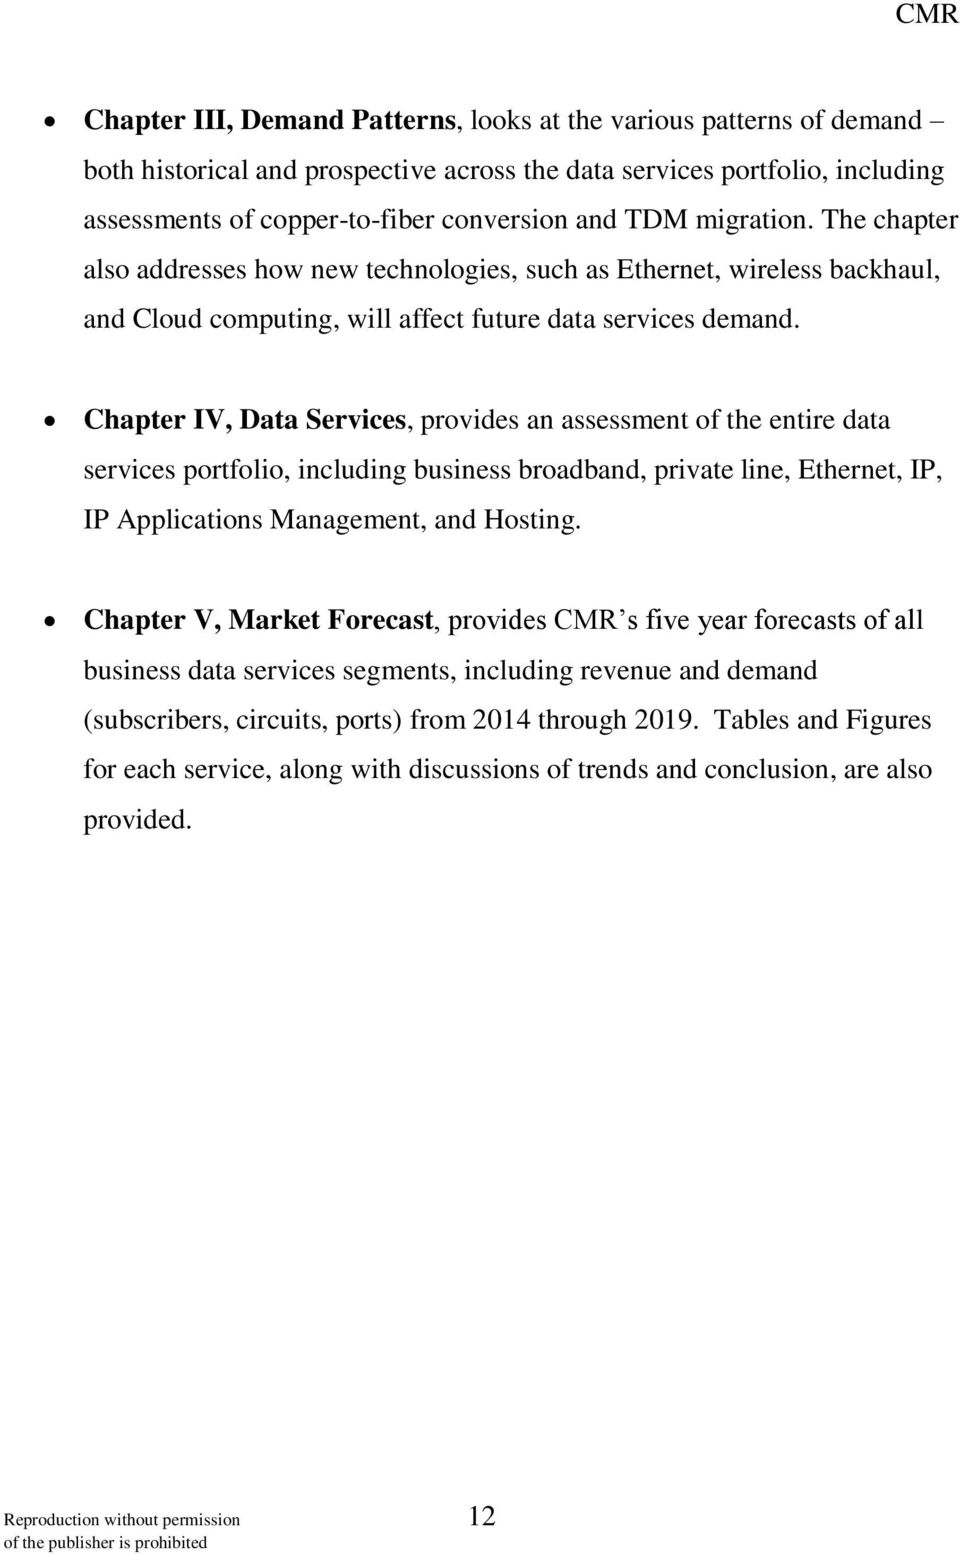 Chapter IV, Data Services, provides an assessment of the entire data services portfolio, including business broadband, private line, Ethernet, IP, IP Applications Management, and Hosting.